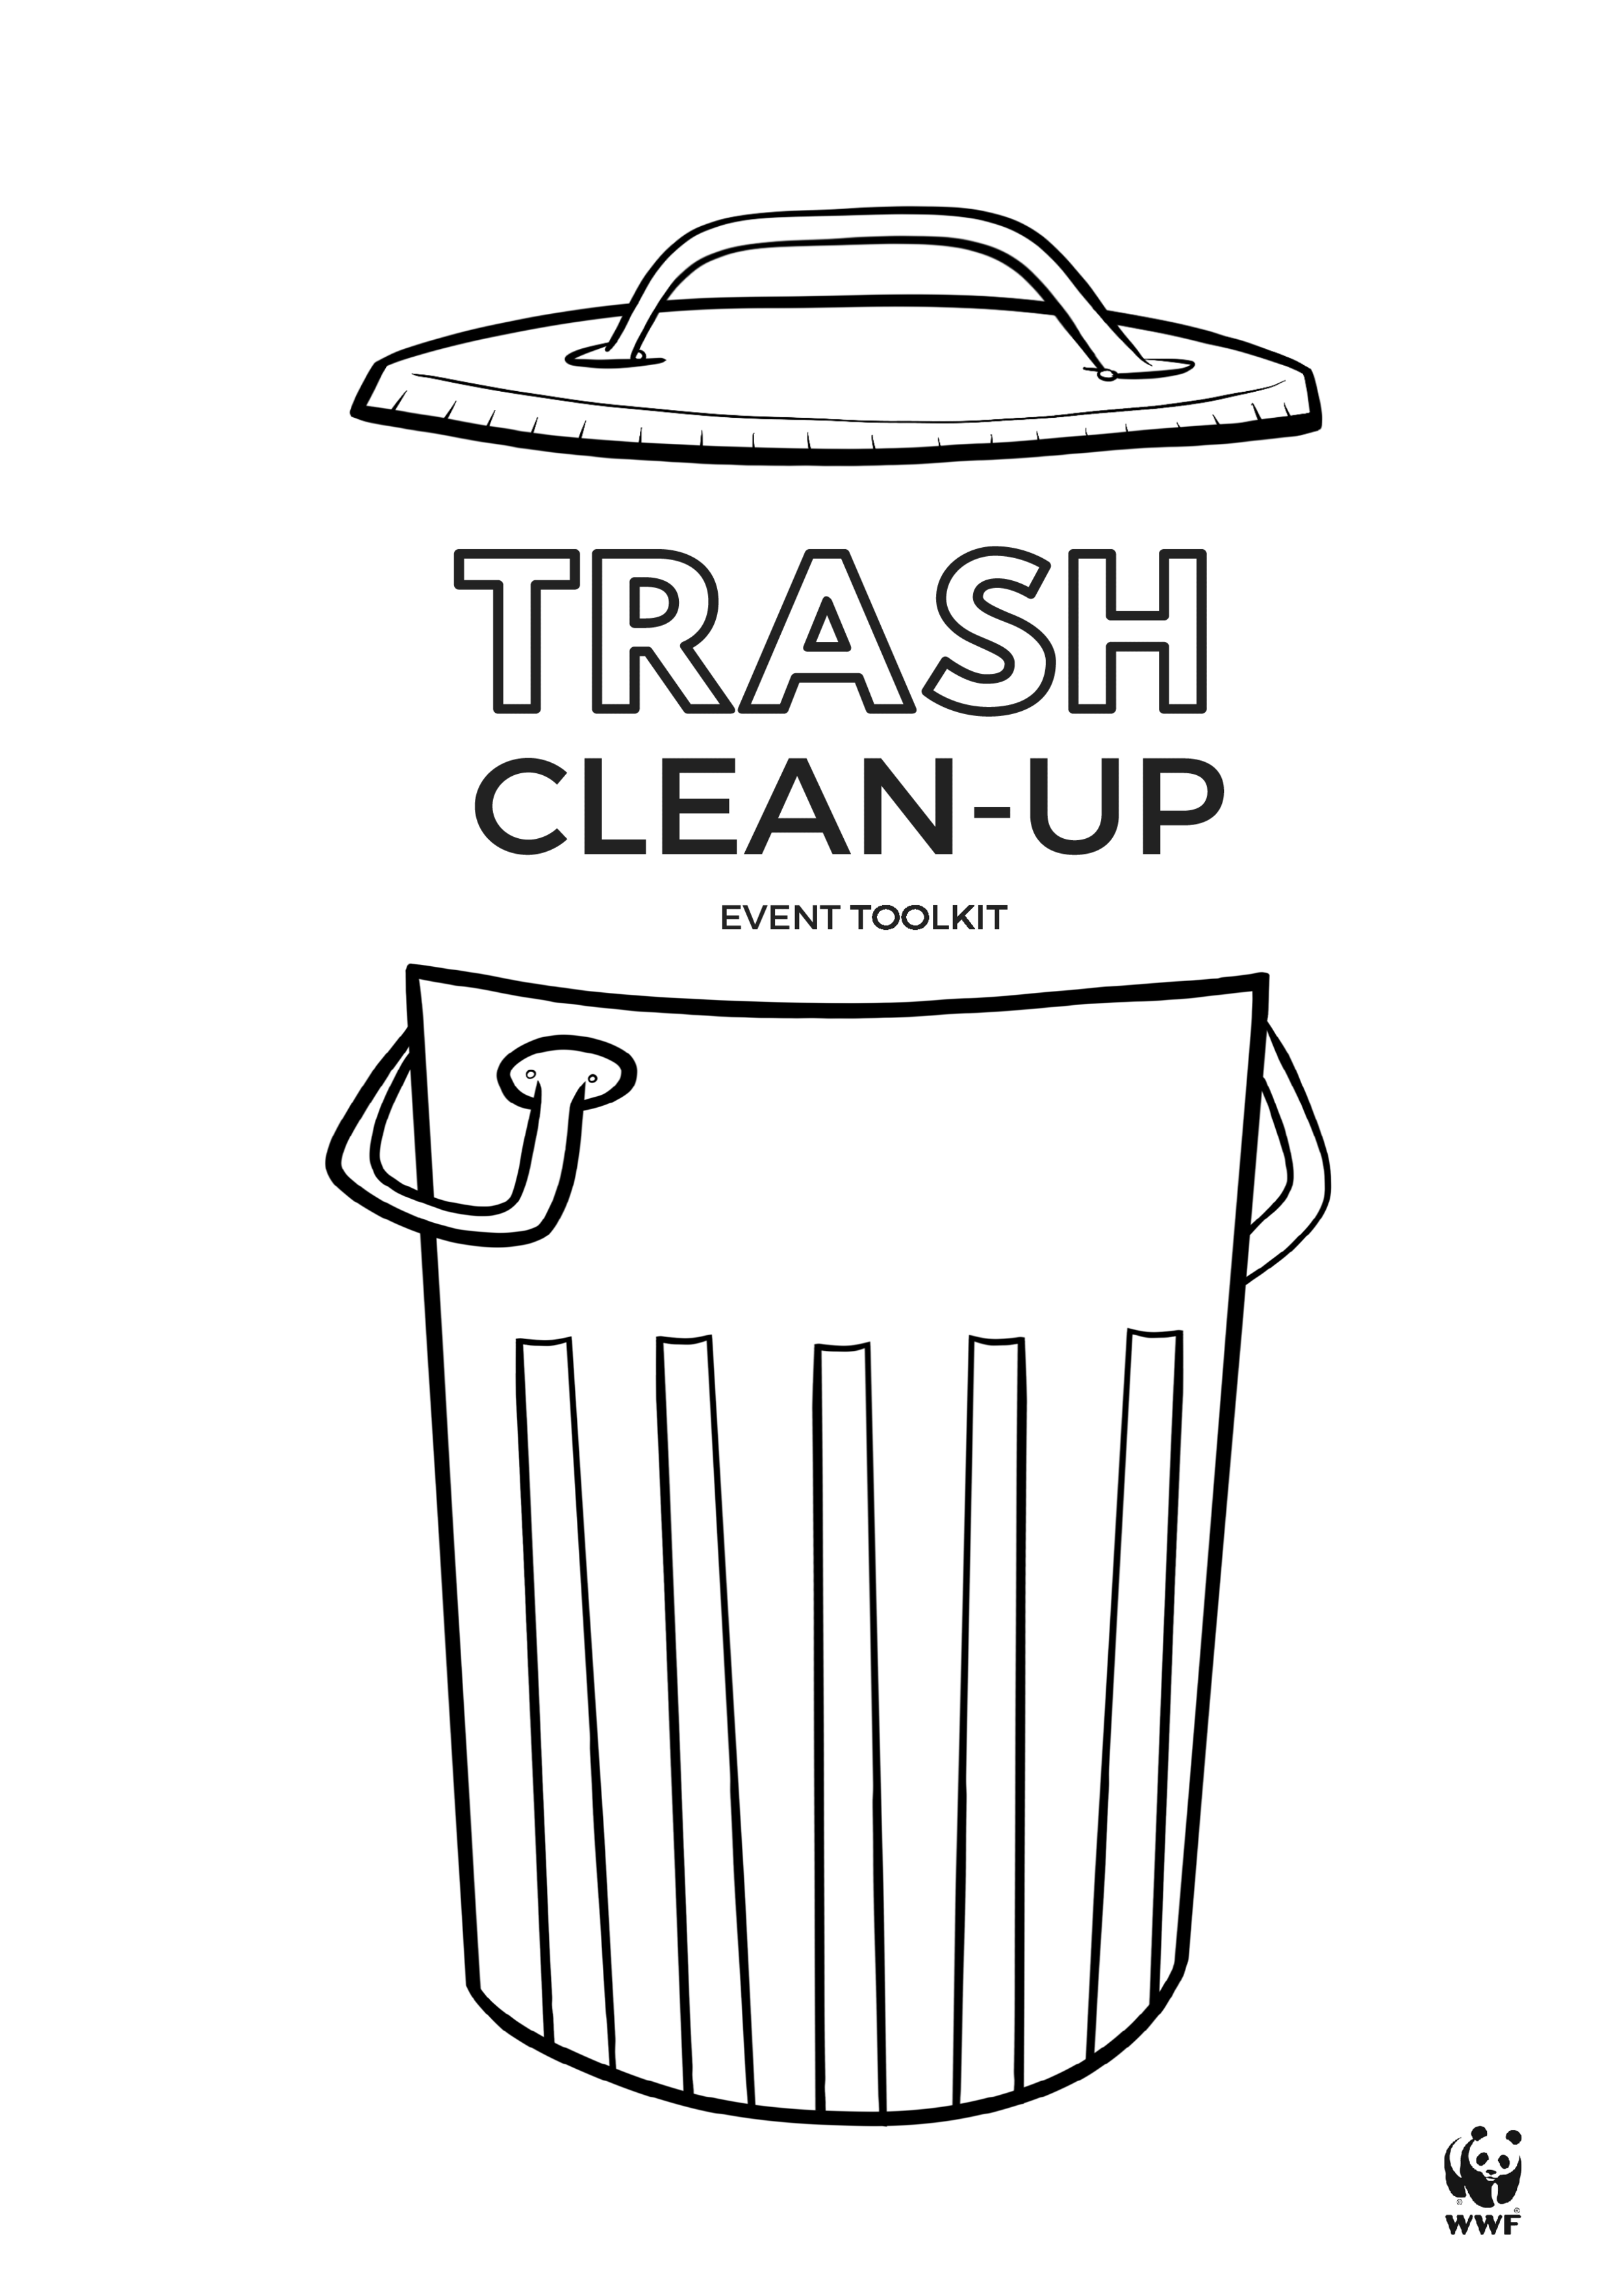 Trash Clean-Up Toolkit - This was developed for the World Wildlife Fund for volunteers usage internationally in order to organize clean-up in their communities.